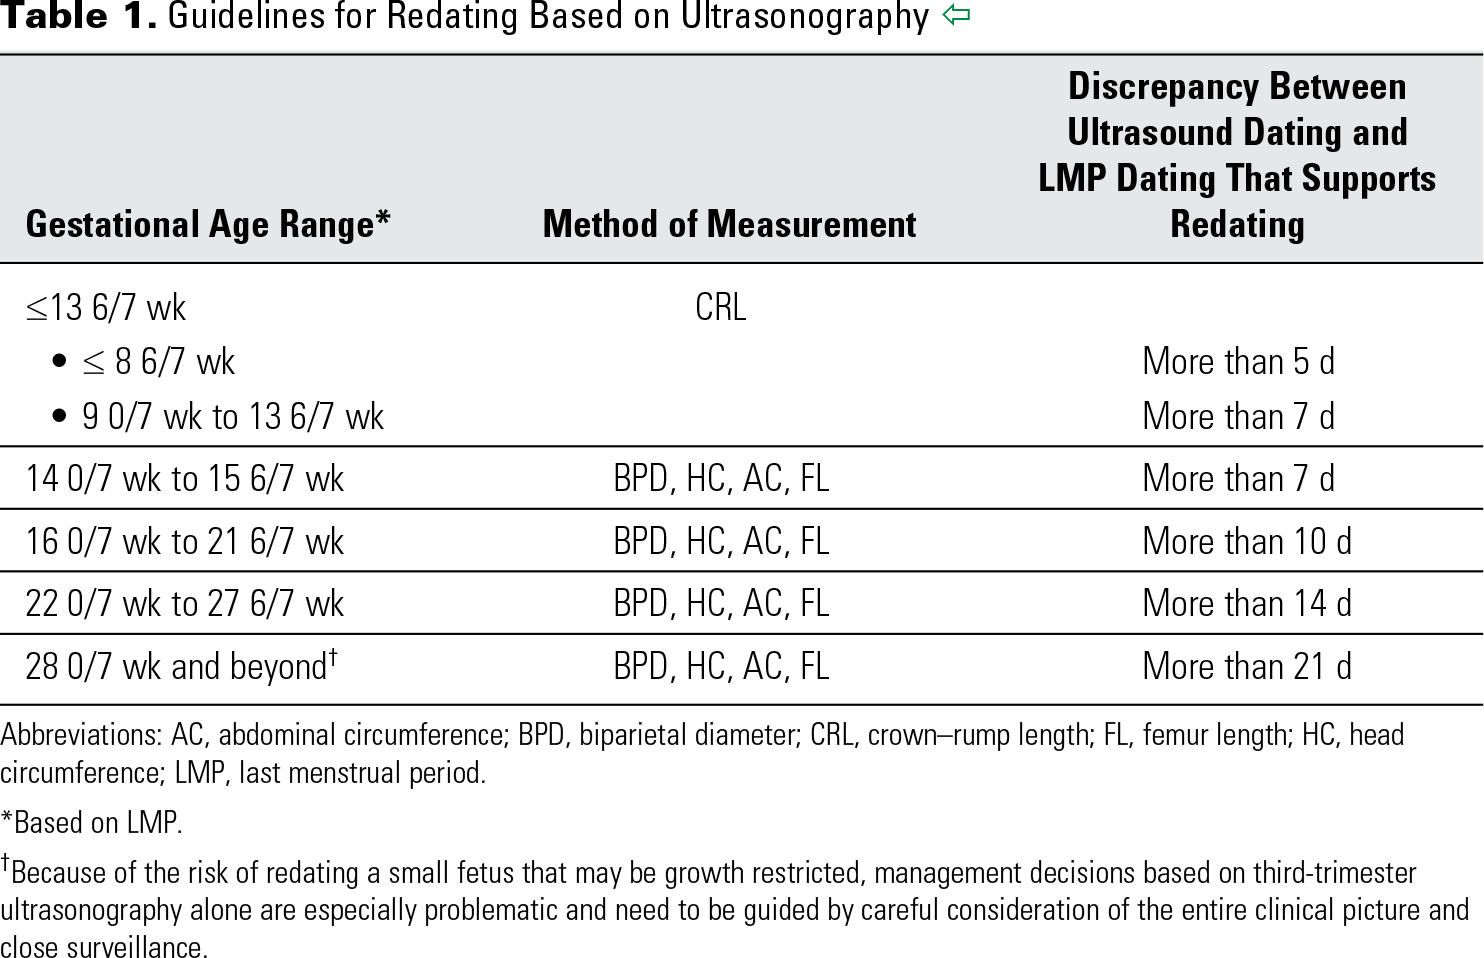 Table 1. Guidelines for Redating Based on Ultrasonography